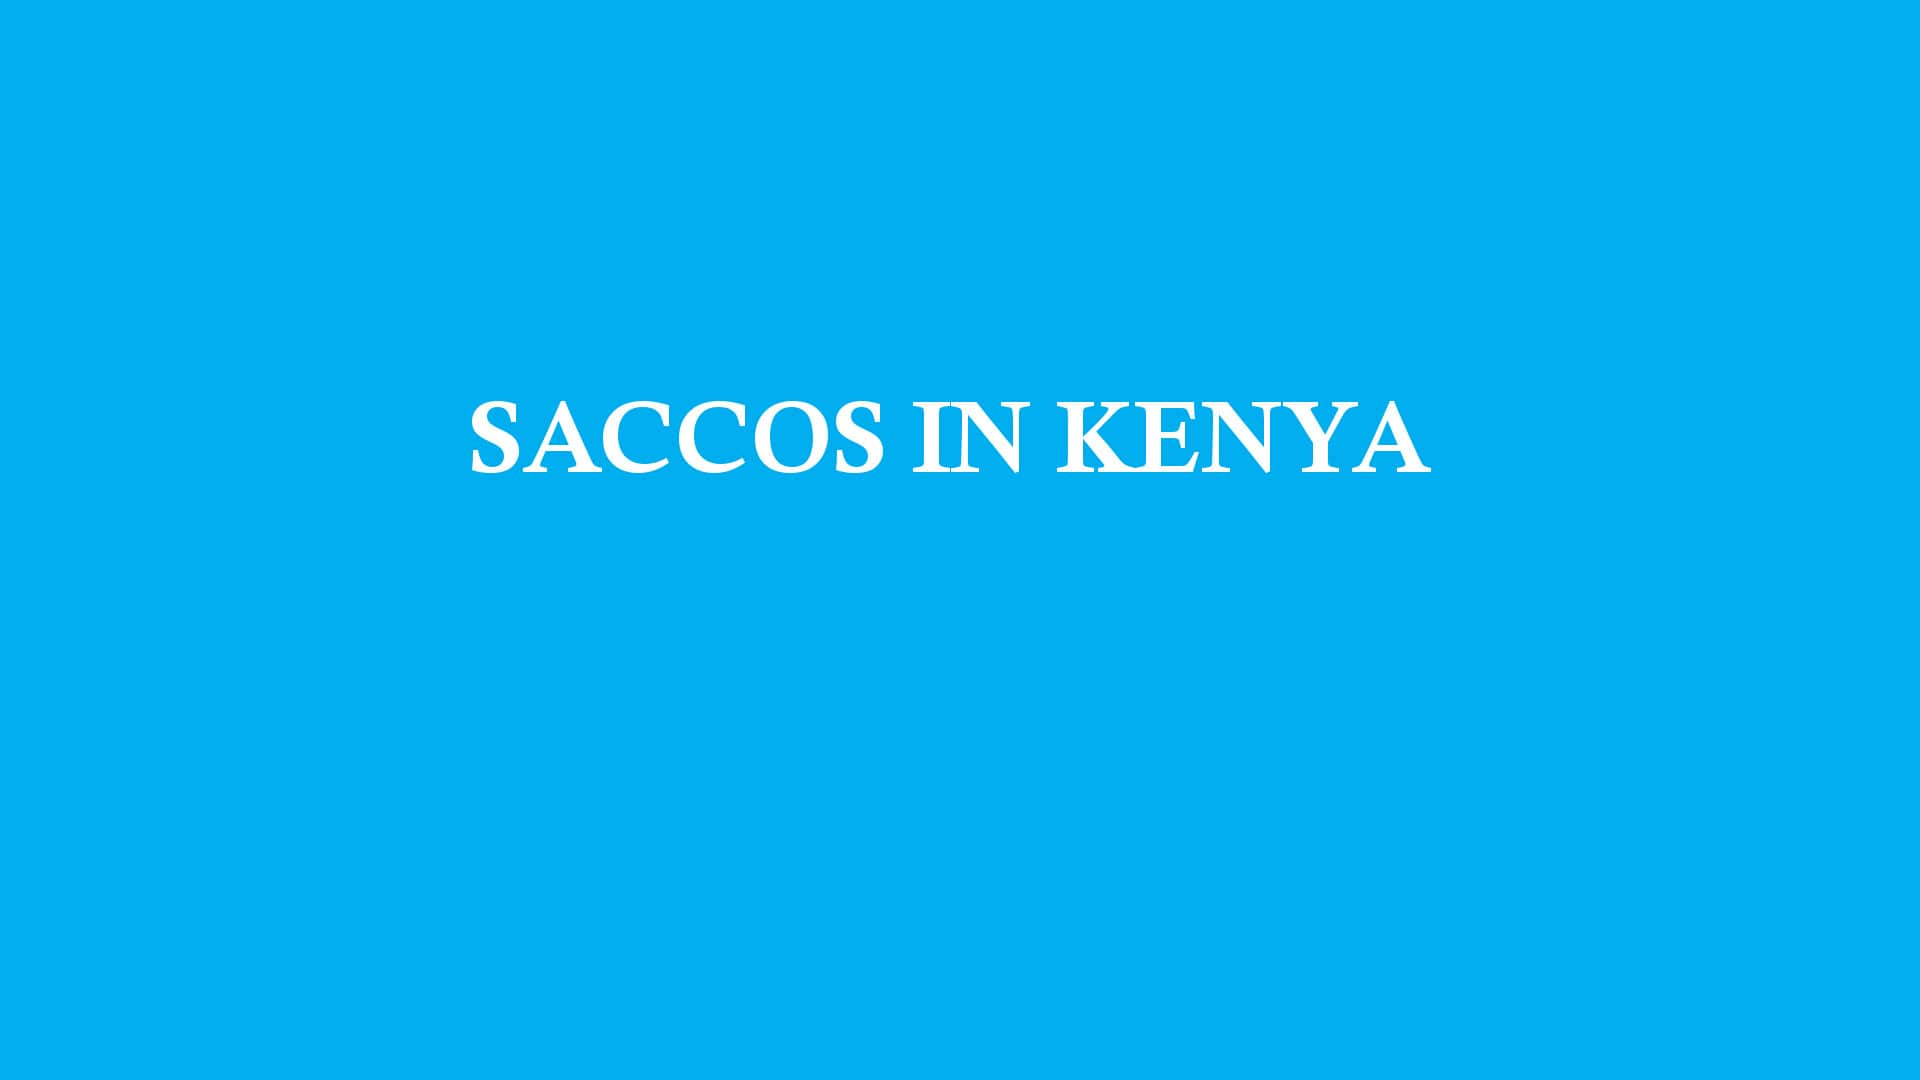 saccos in kenya